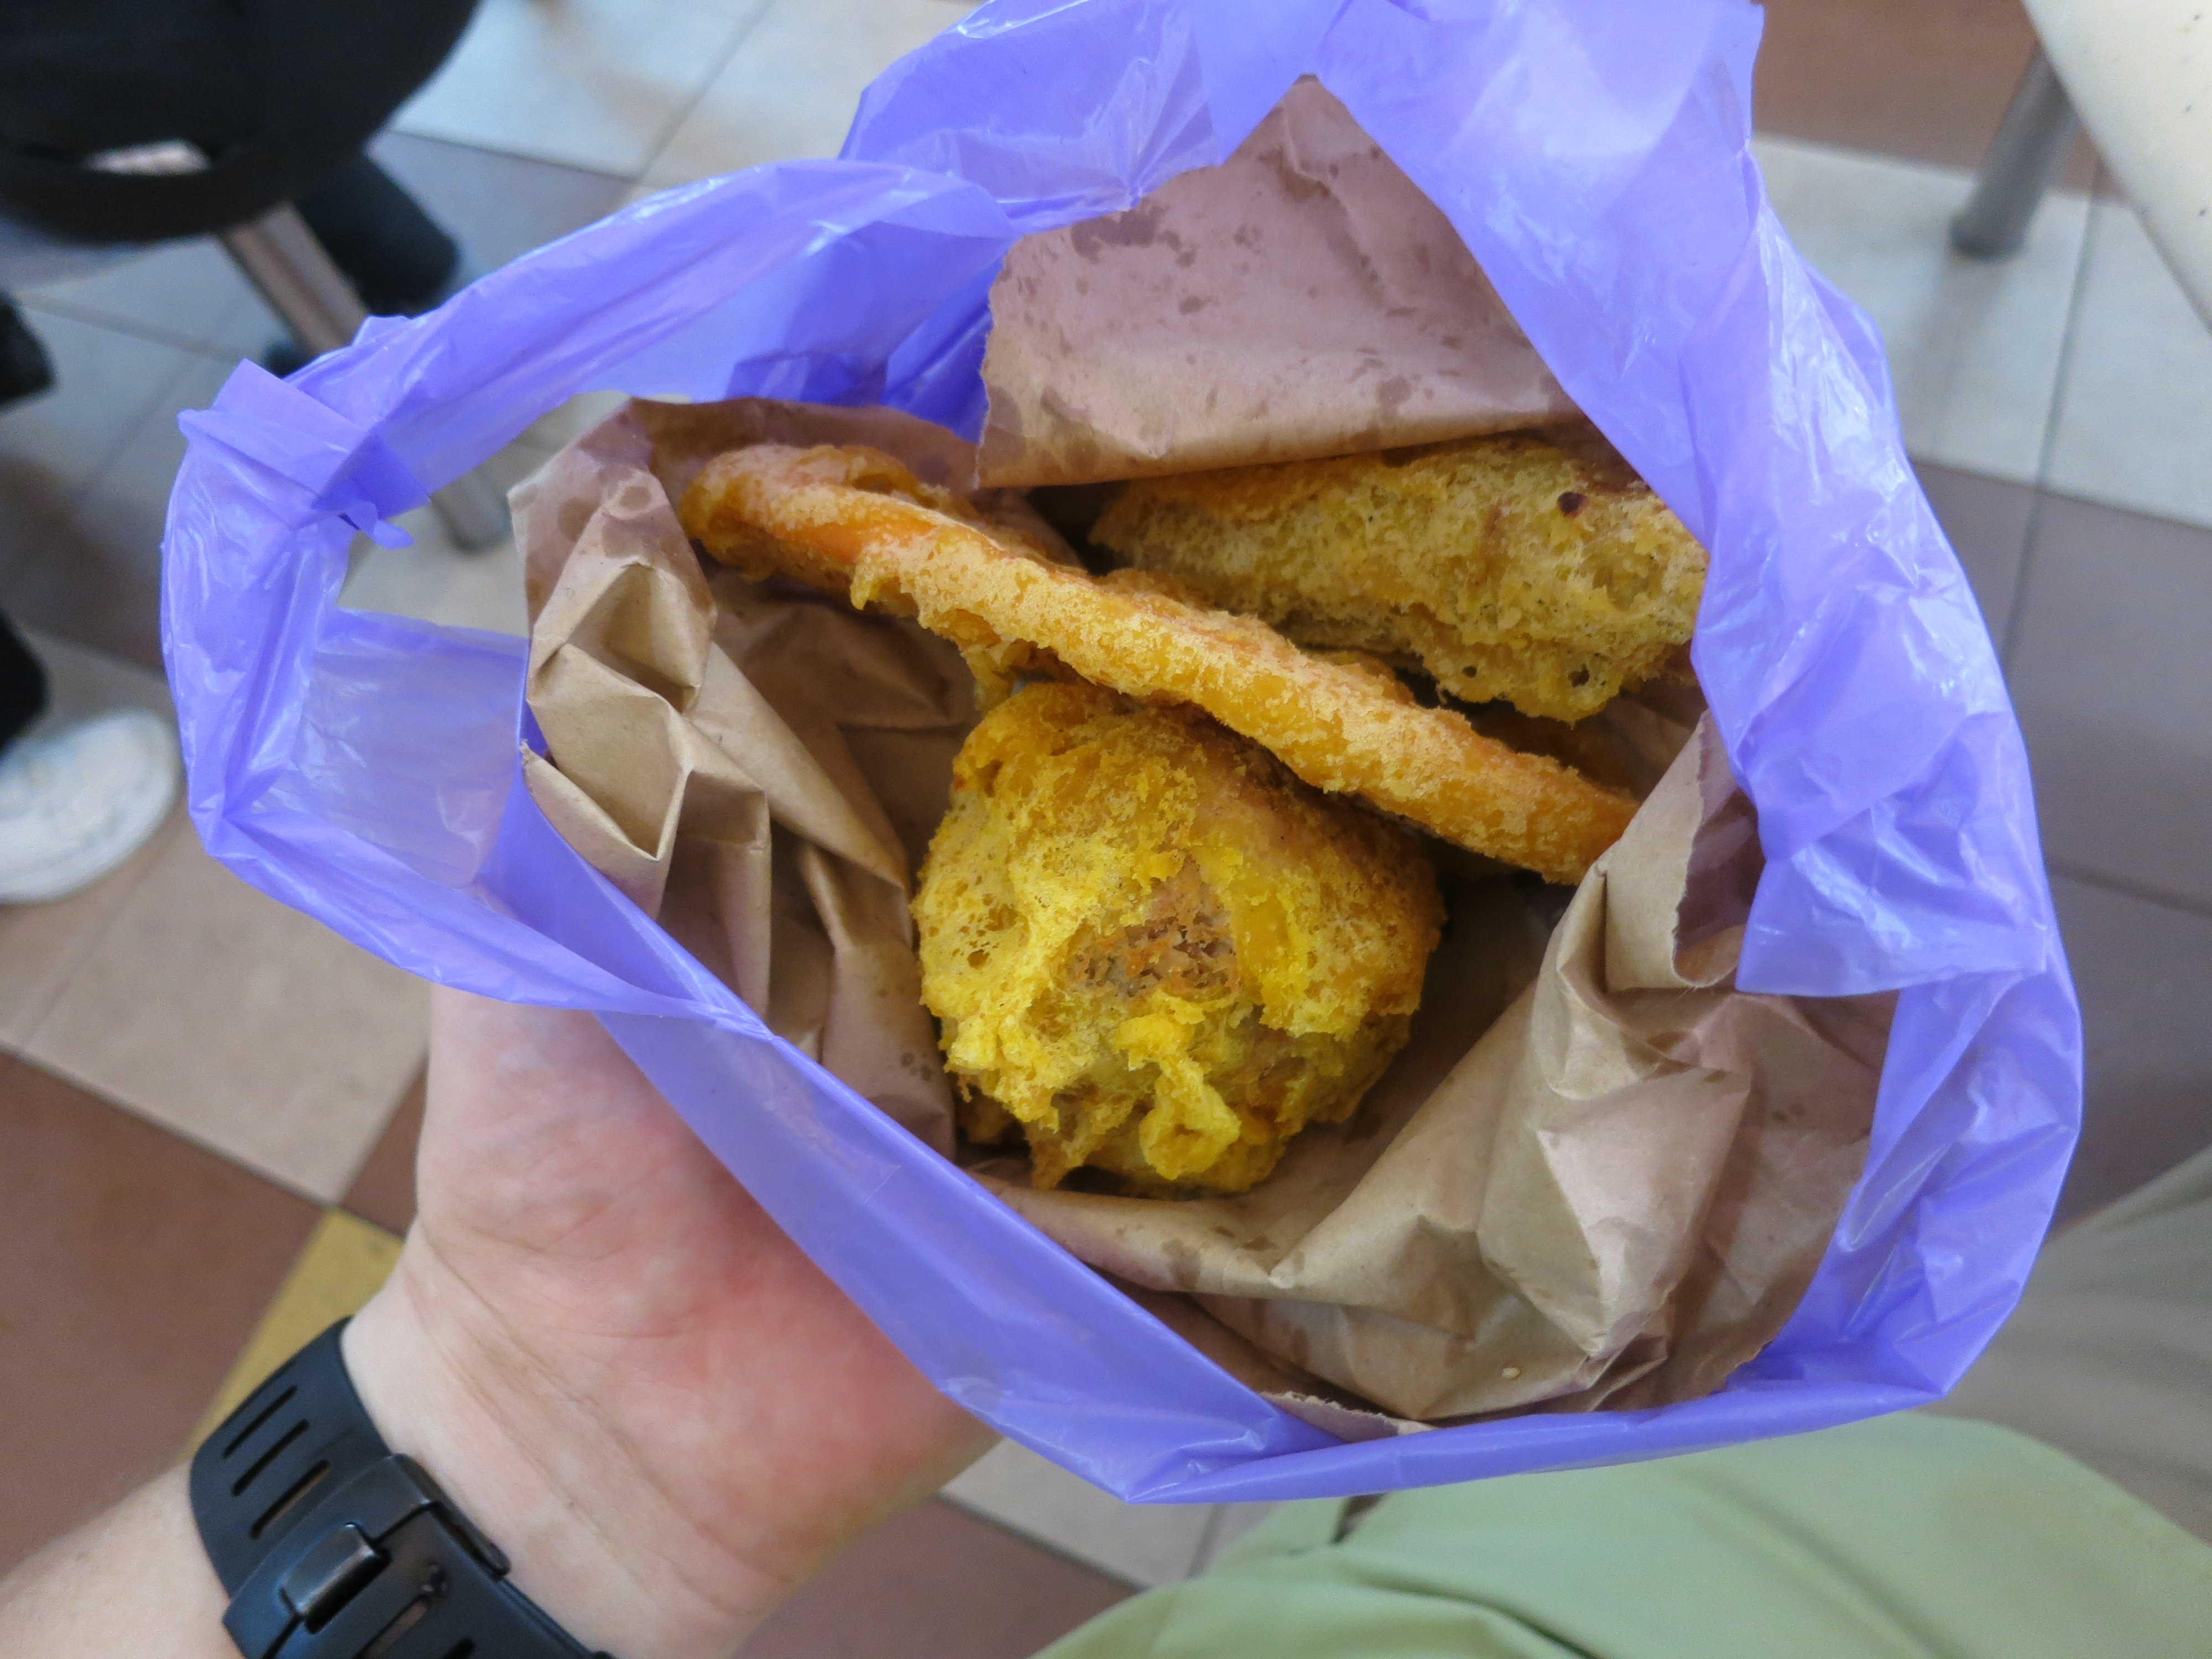 Food 5 – Fried Banana, Yam, and Sweet Potato | Temporarily Lost